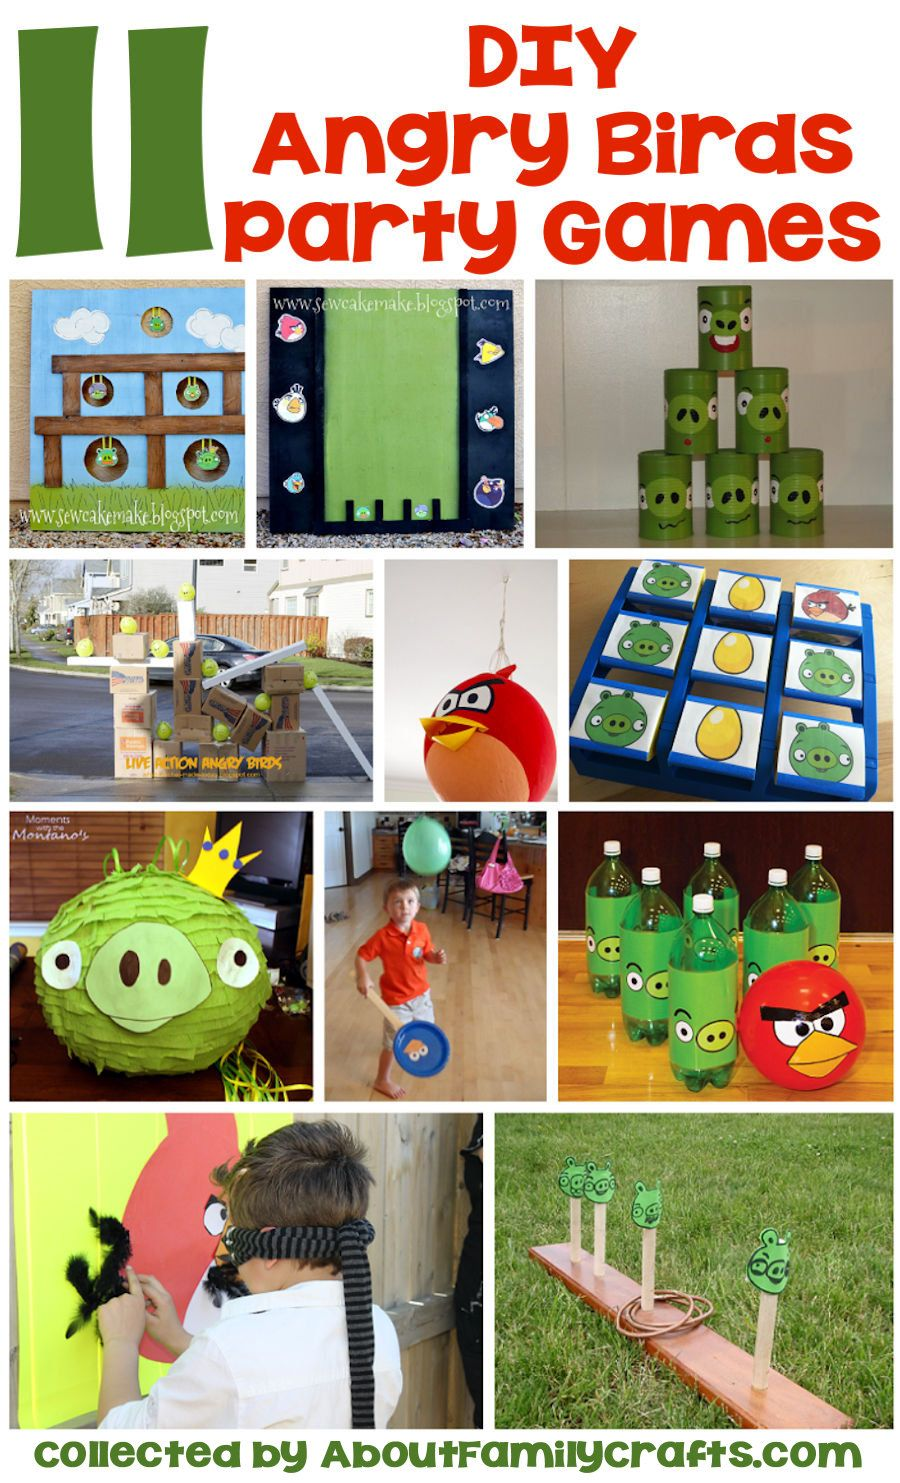 65 diy angry birds party ideas game ideas pinterest bird 65 diy angry birds party ideas solutioingenieria Images